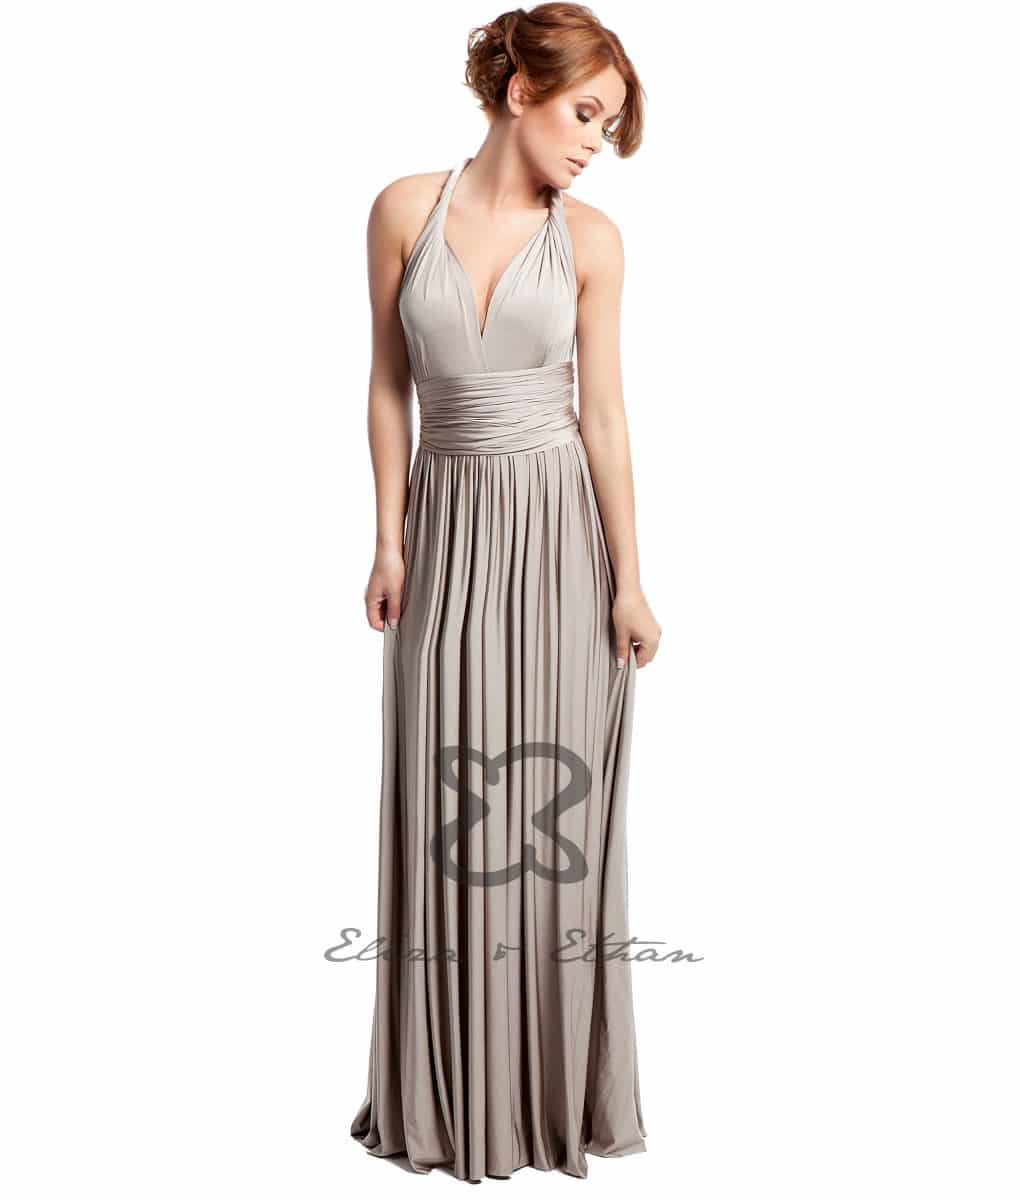 Eliza & Ethan Champagne Multiwrap Dress Alila